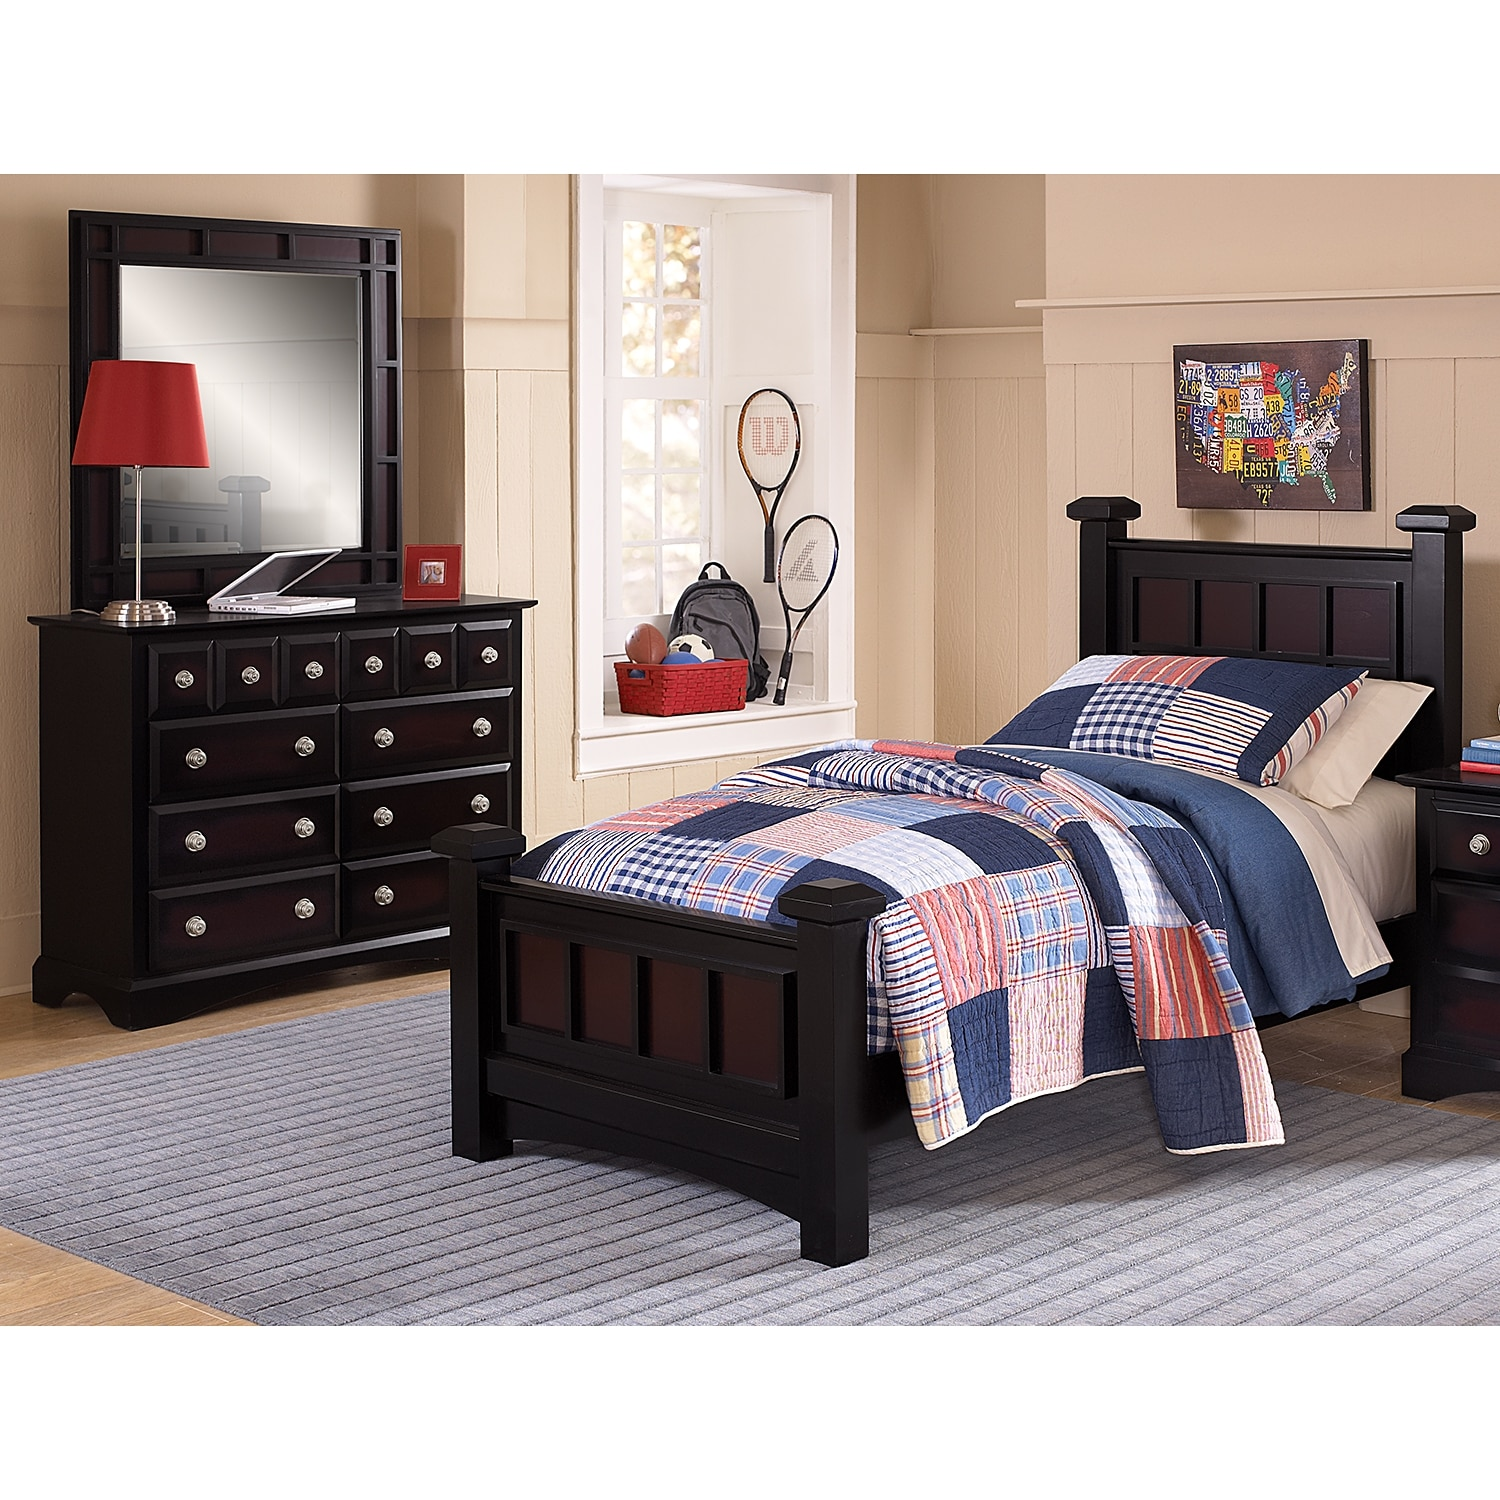 Value City Furniture Prices: Shop 5 Piece Bedroom Sets